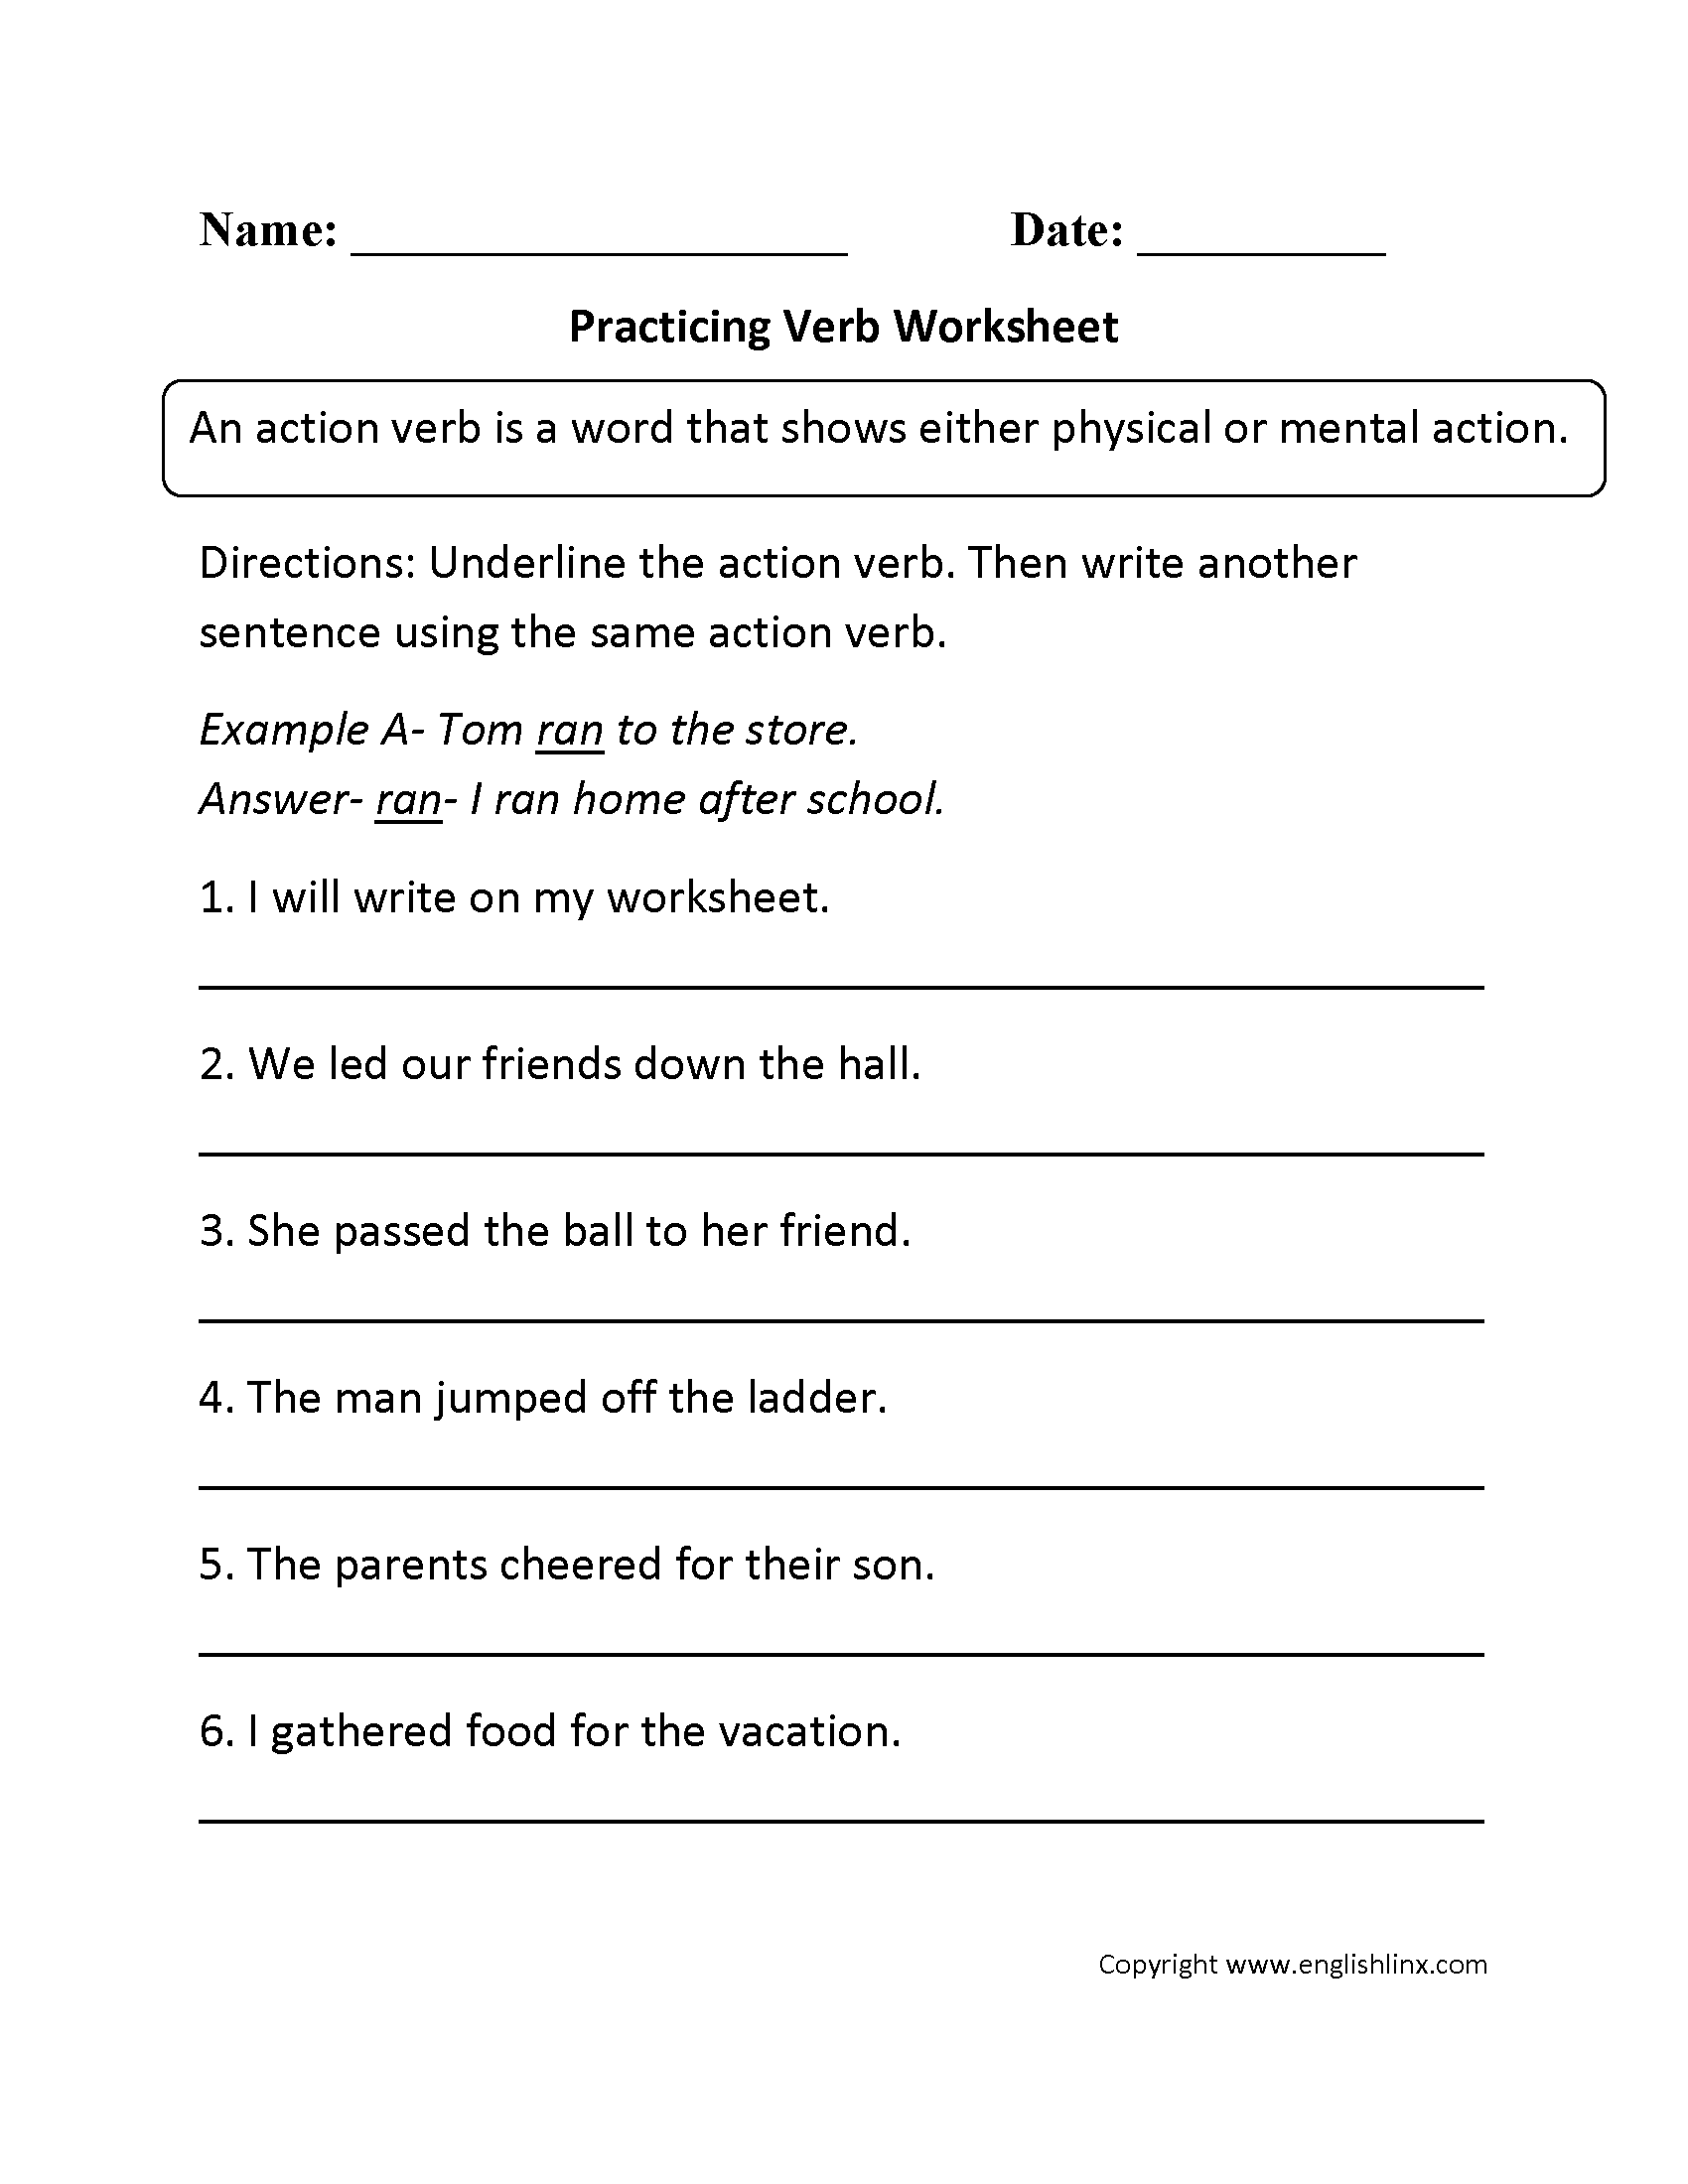 worksheet Verbs Ks1 Worksheet practicing verb worksheet teach pinterest worksheets a sample of series for students to correct errors in sentences the can work individually on rewr